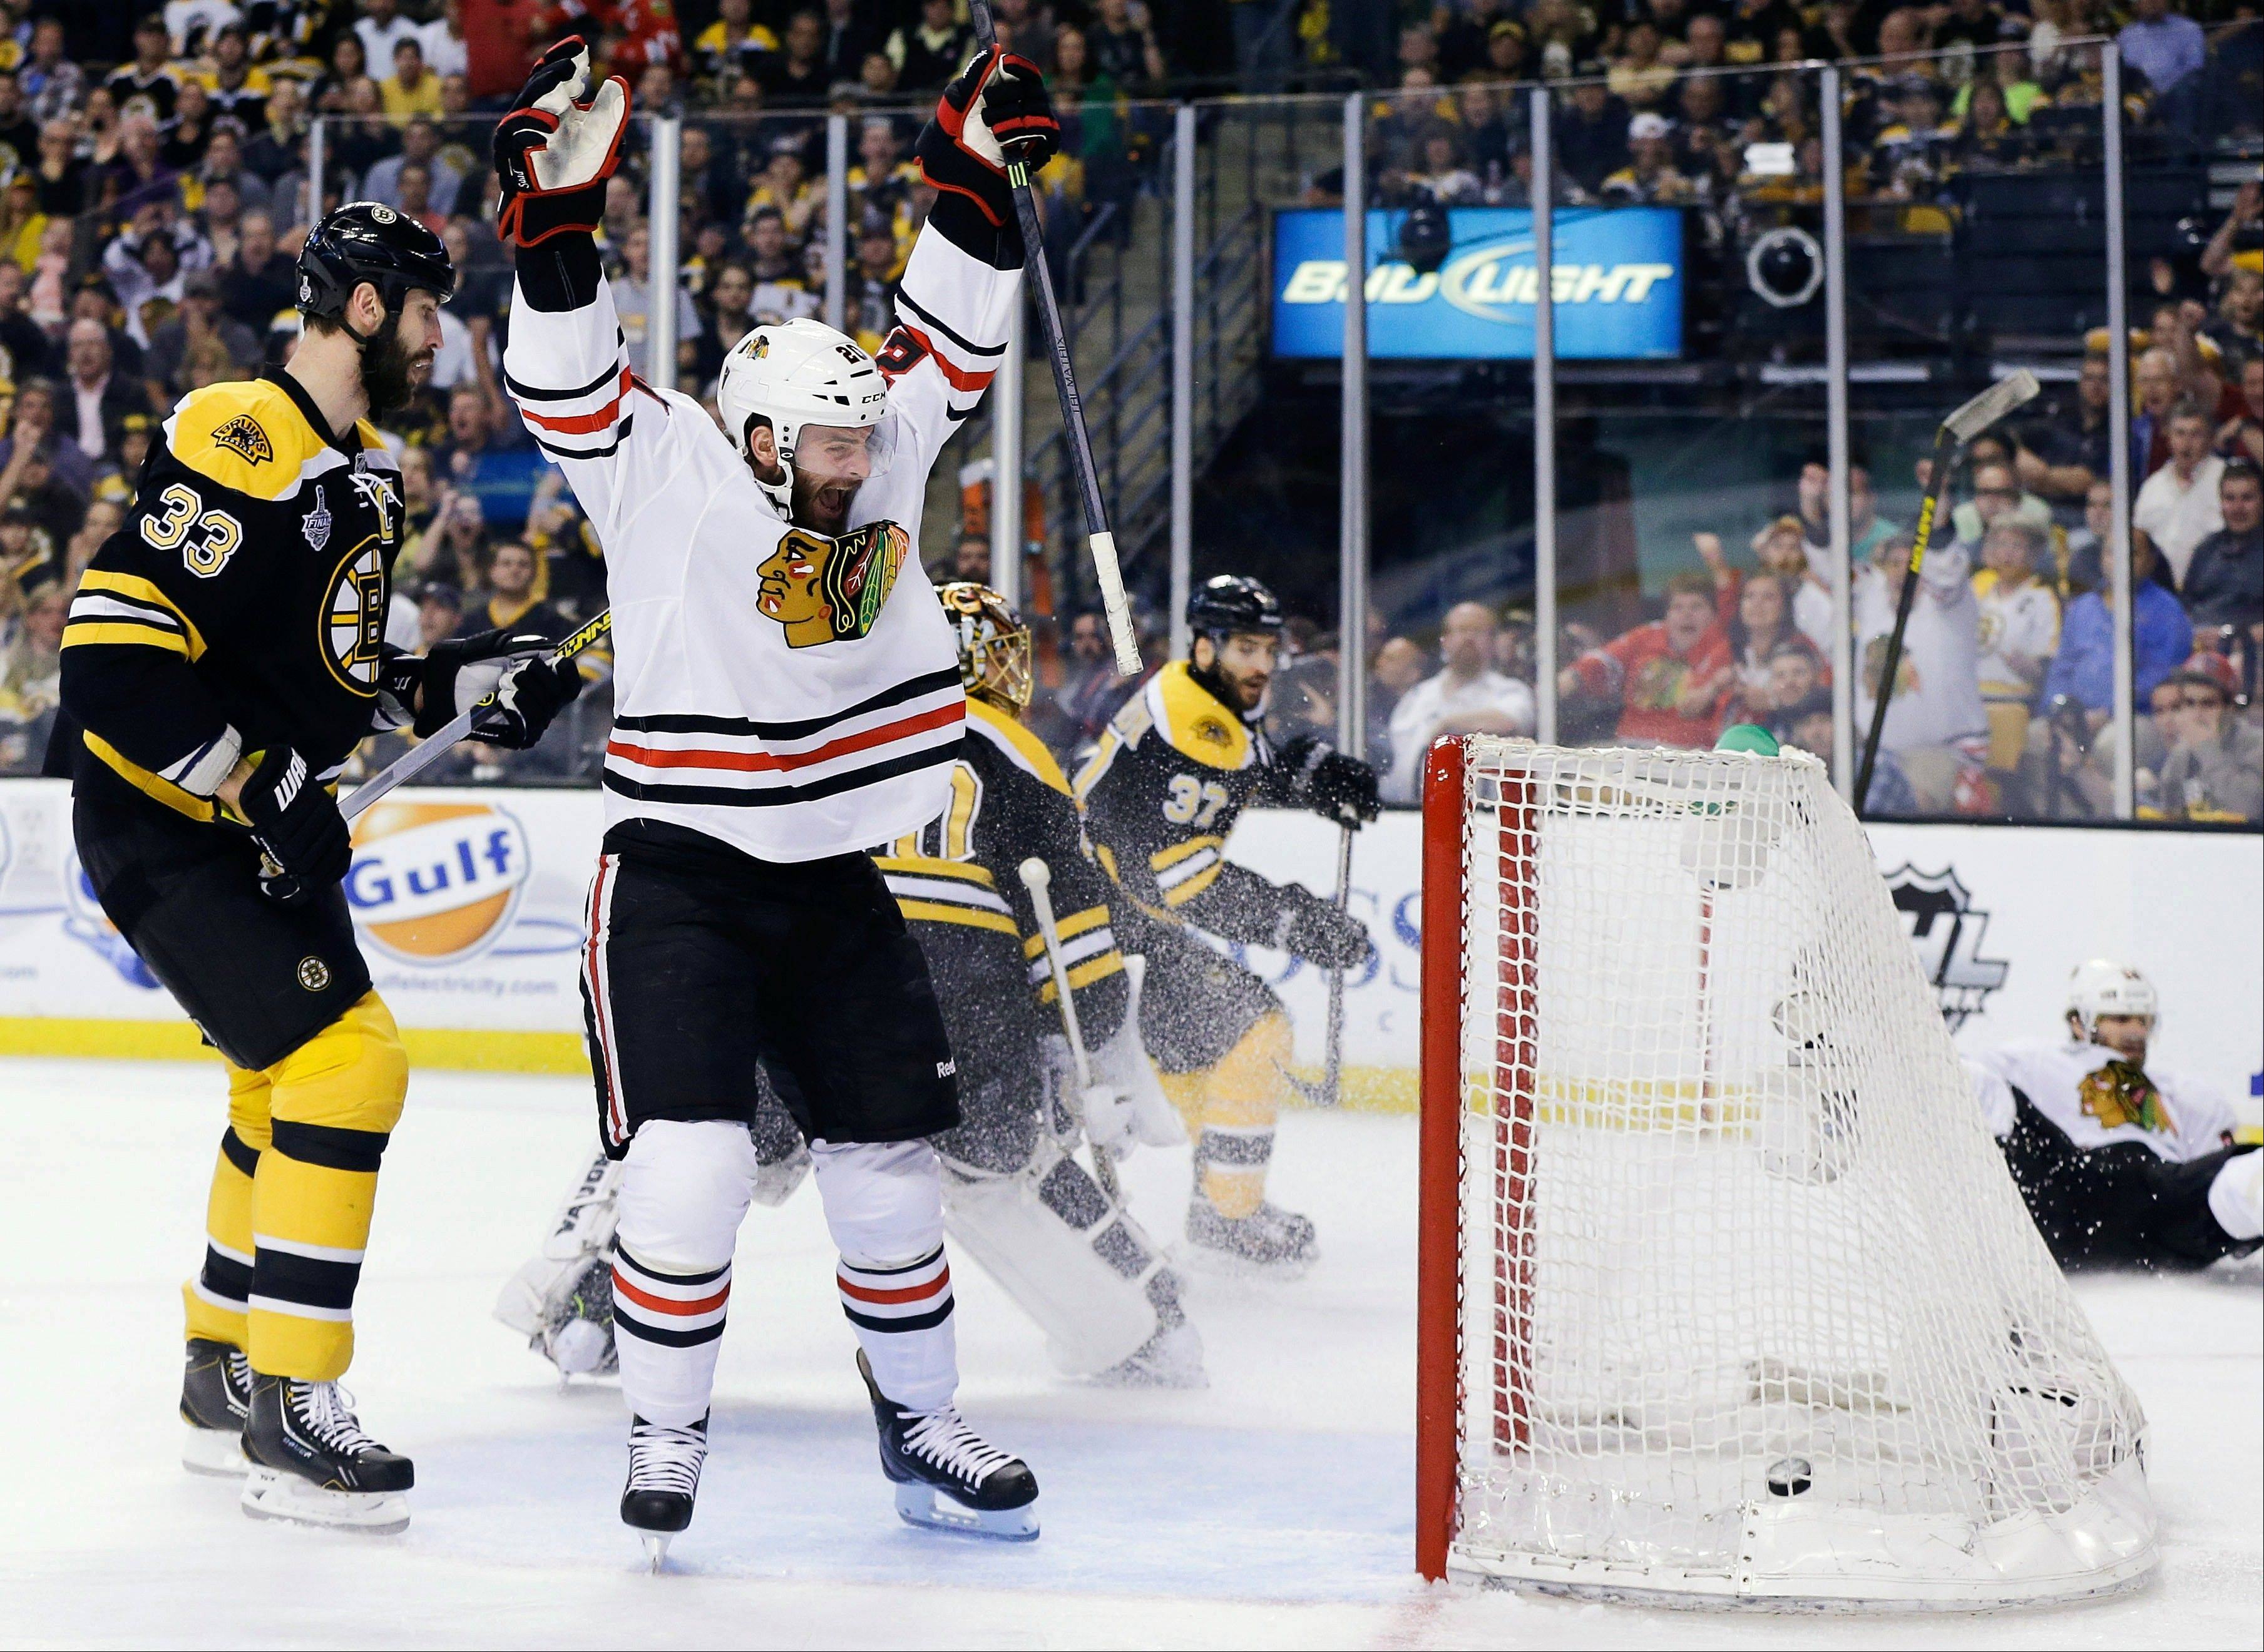 Chicago Blackhawks left wing Brandon Saad, center, celebrates a goal by Blackhawks center Michal Handzus, right, in front of Boston Bruins defenseman Zdeno Chara (33) during the first period in Game 4 of the NHL hockey Stanley Cup Finals.